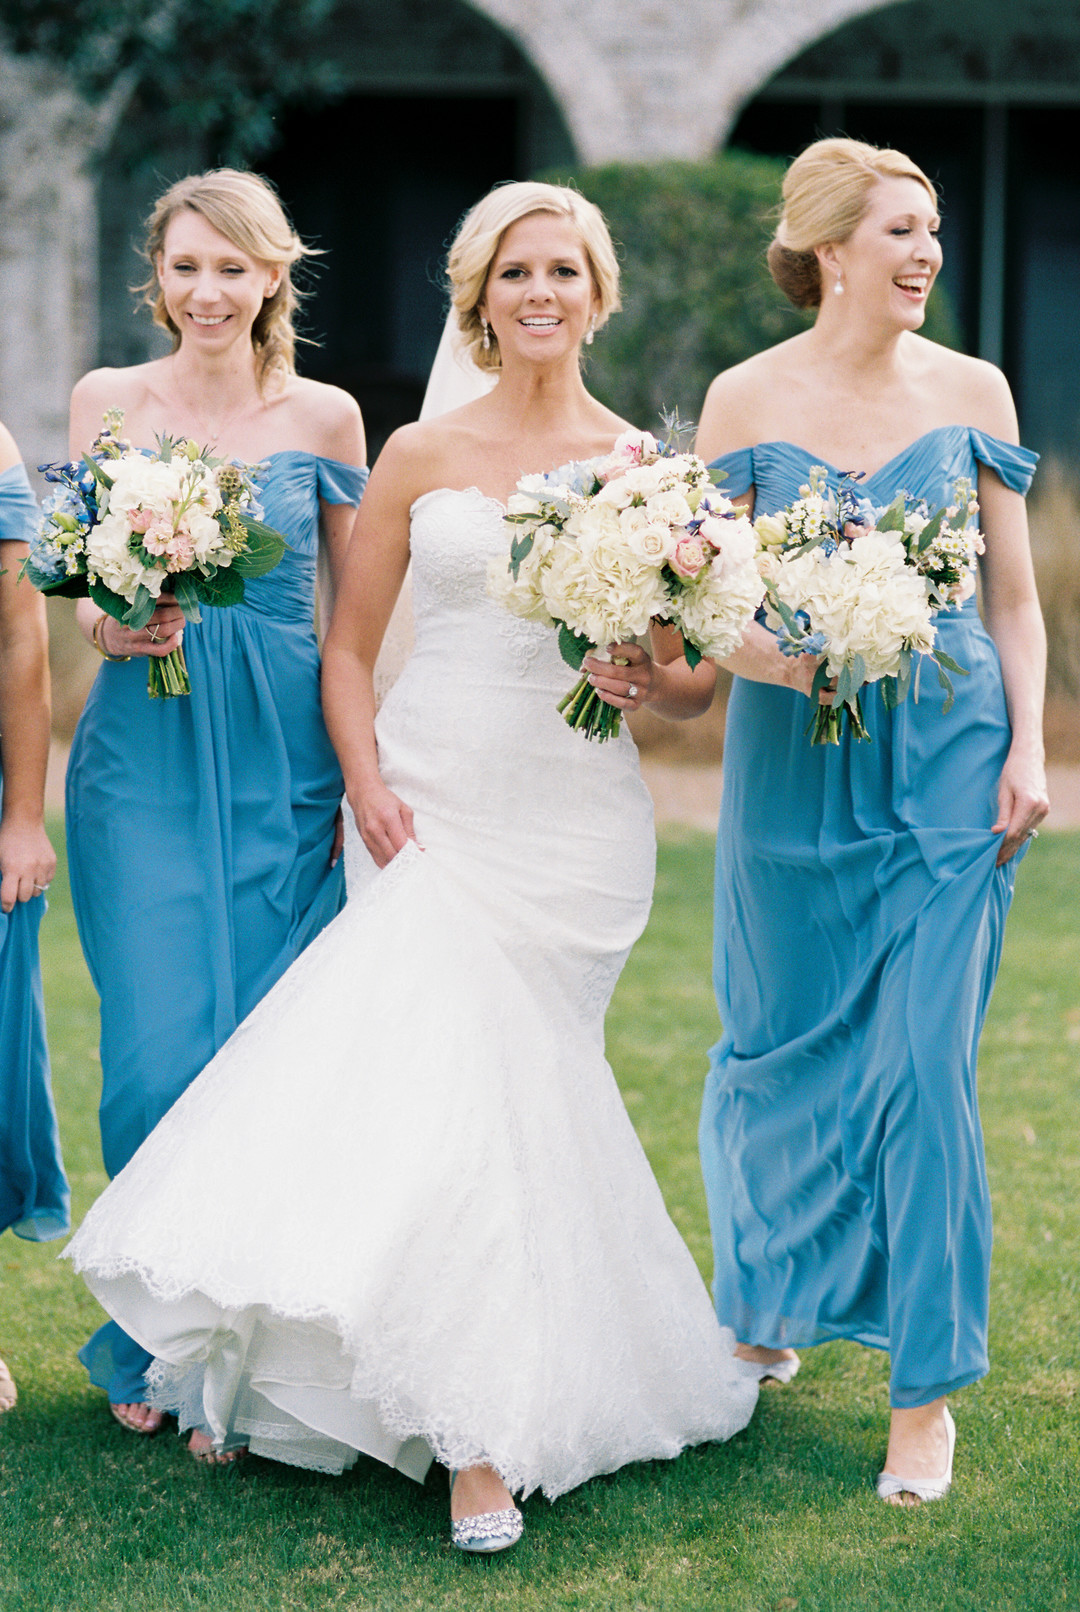 Sheorn_Snijders_CatherineAnnPhotography_catherineannphotographywedding31018carolineericfilm0066_big.jpg